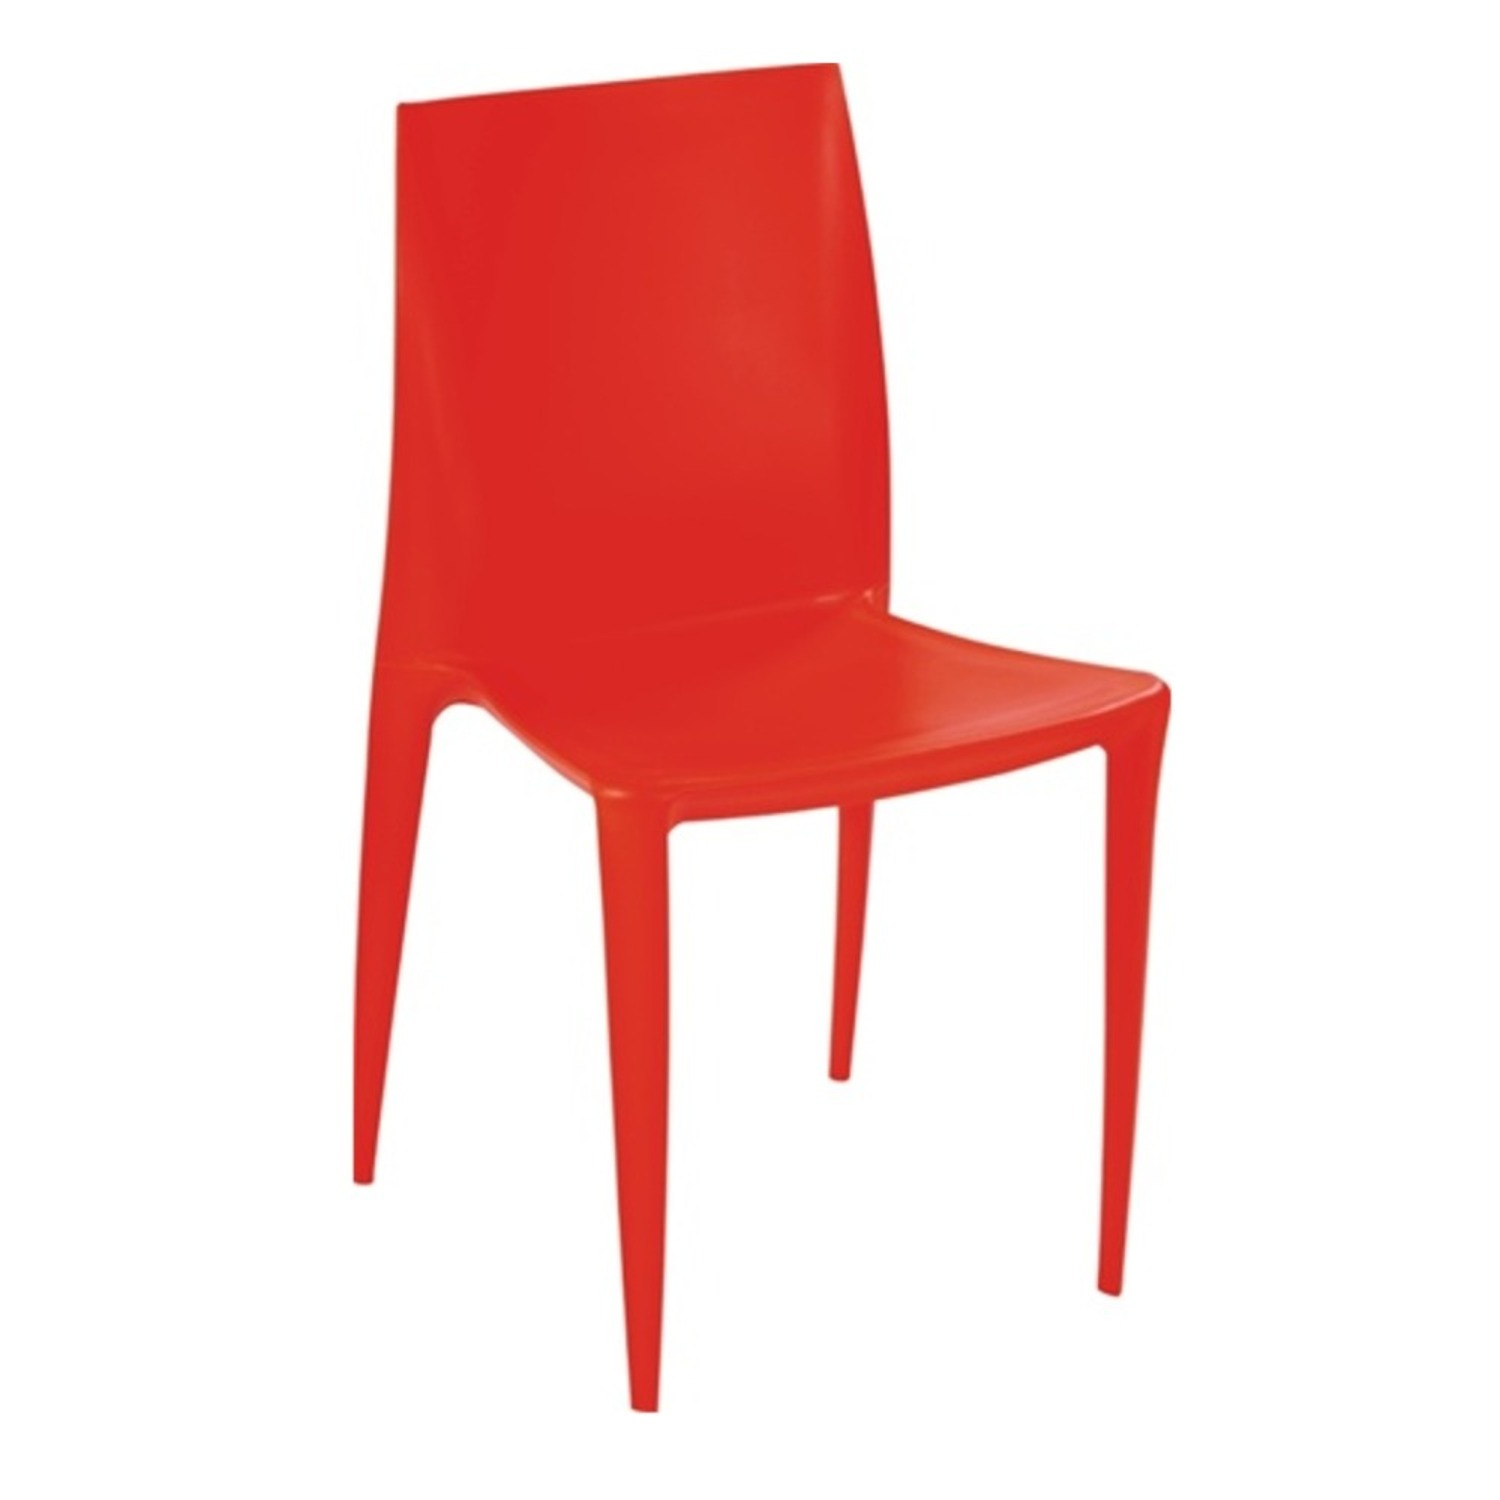 Dining Chair In Square-Shaped Orange Finish - image-2